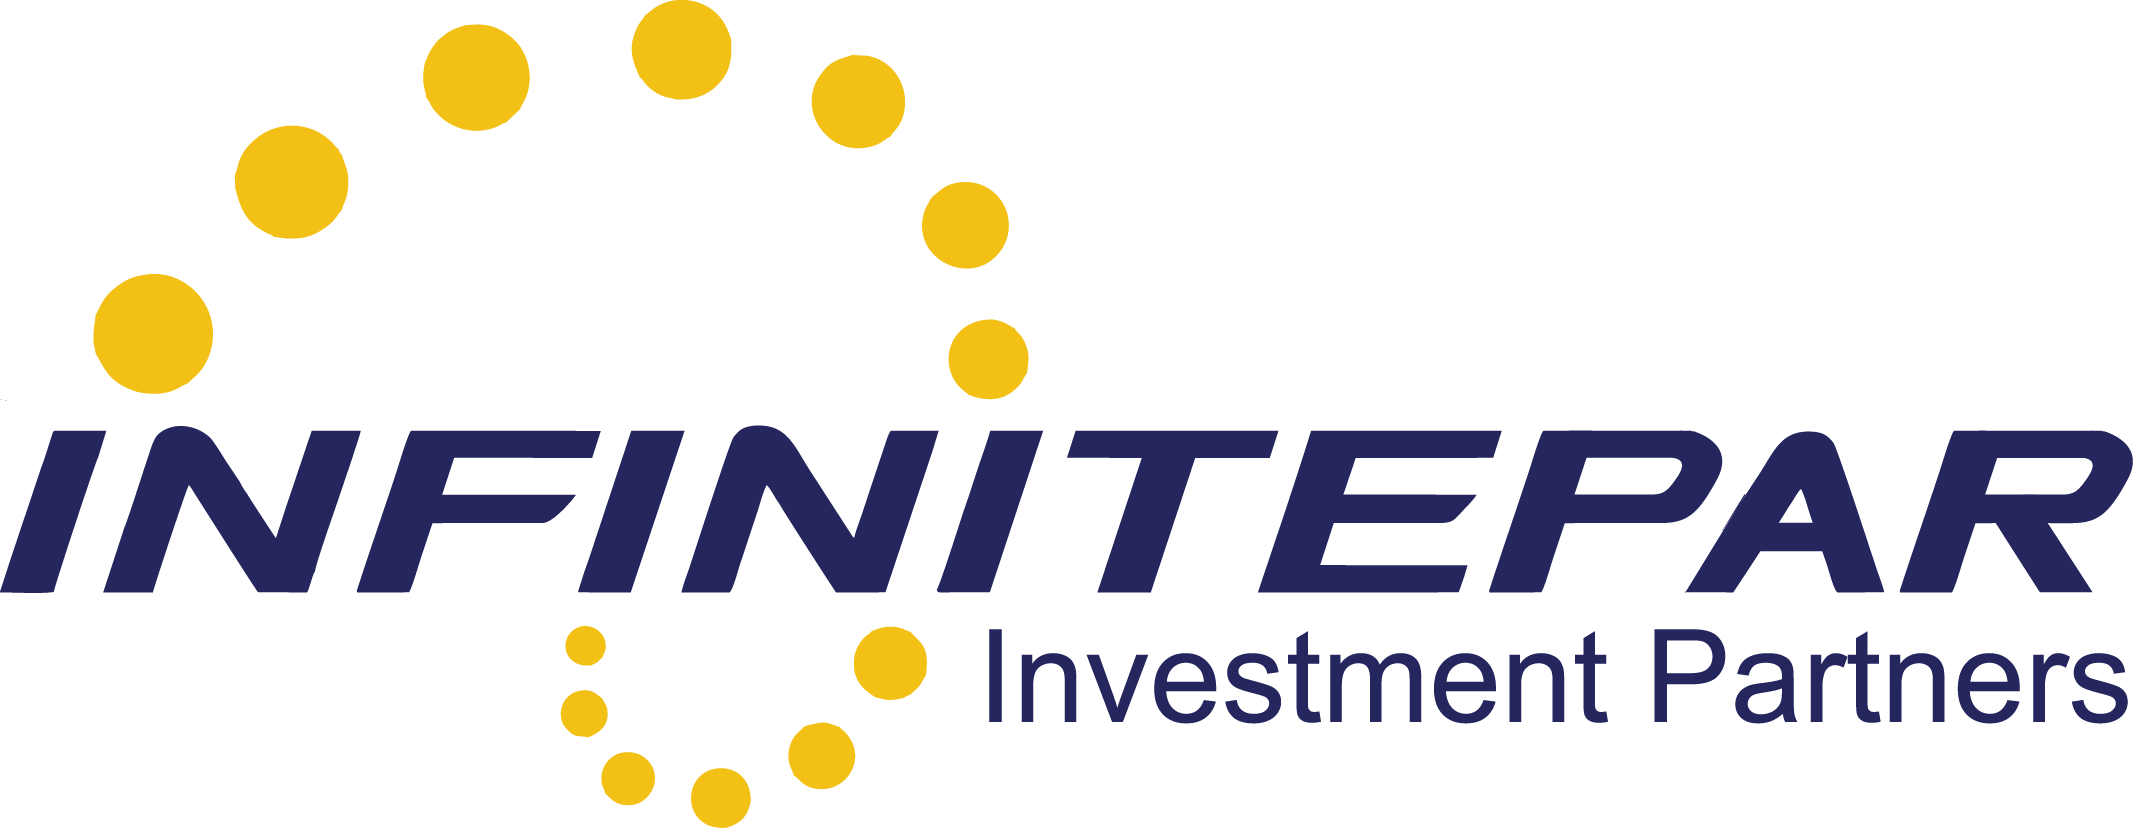 Investiment Partners